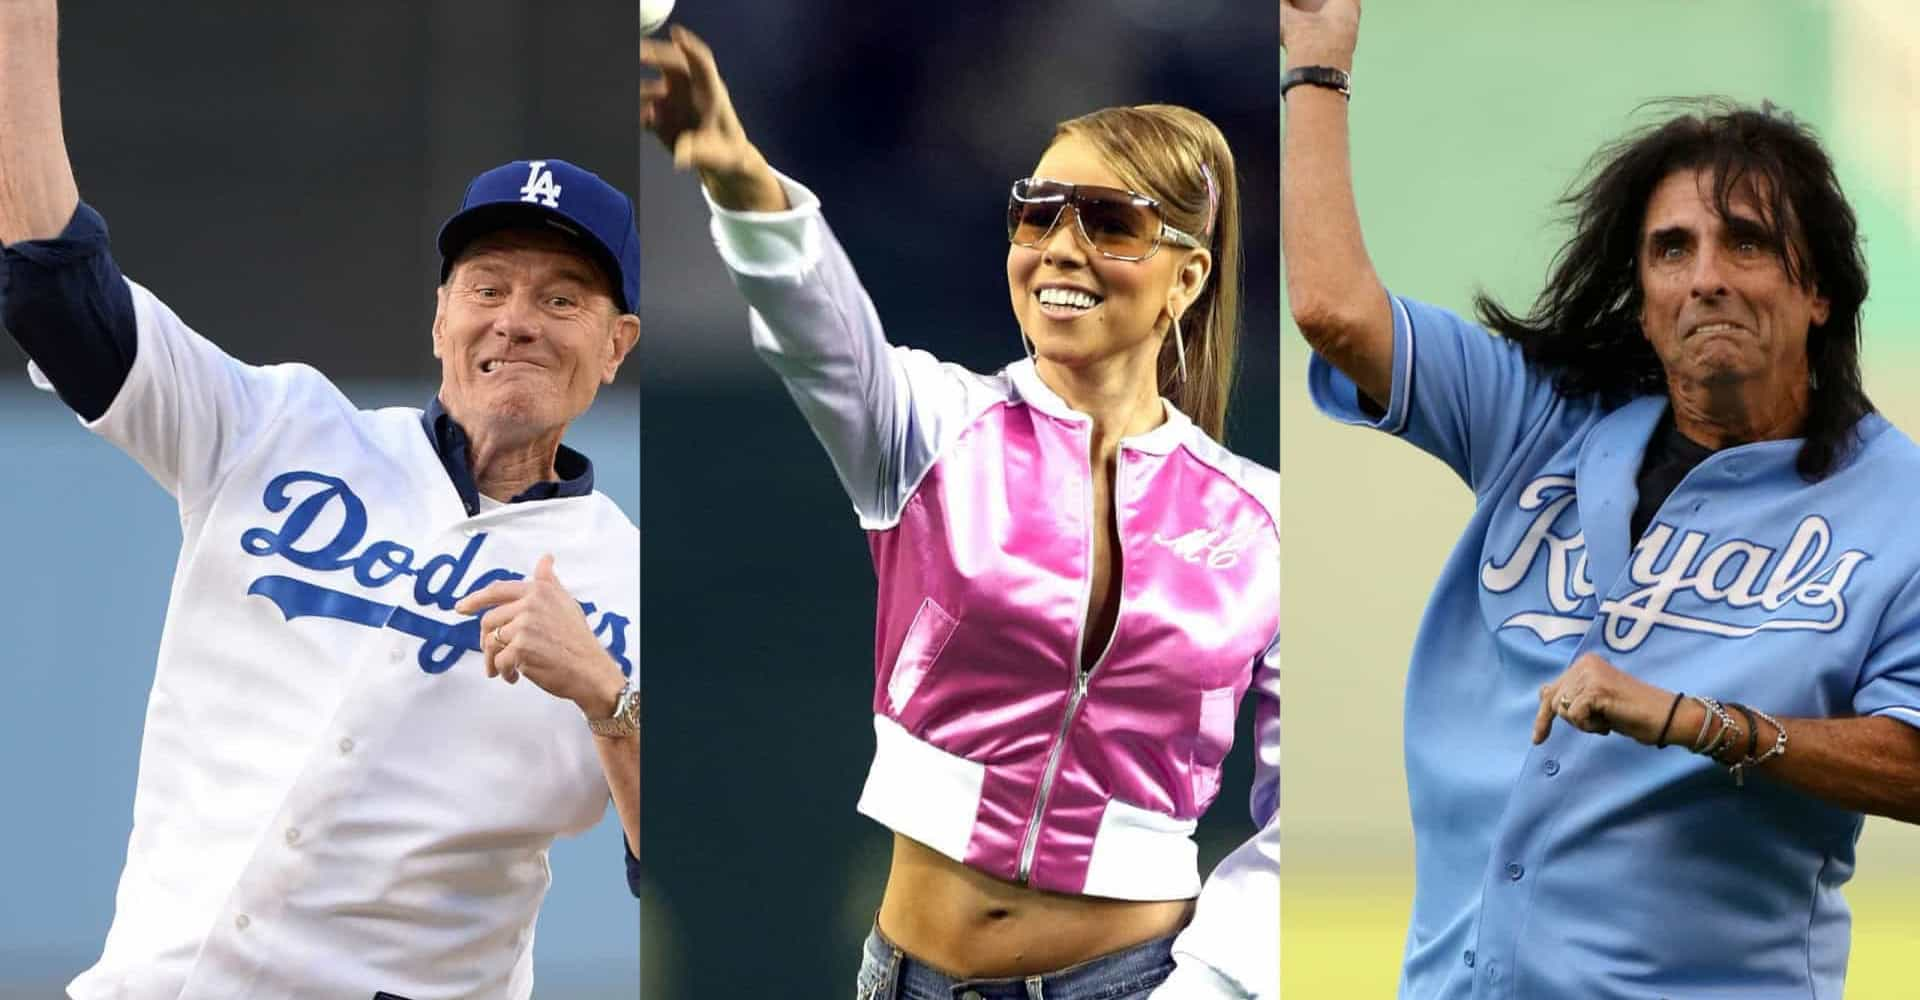 Memorable celebrity first baseball pitches